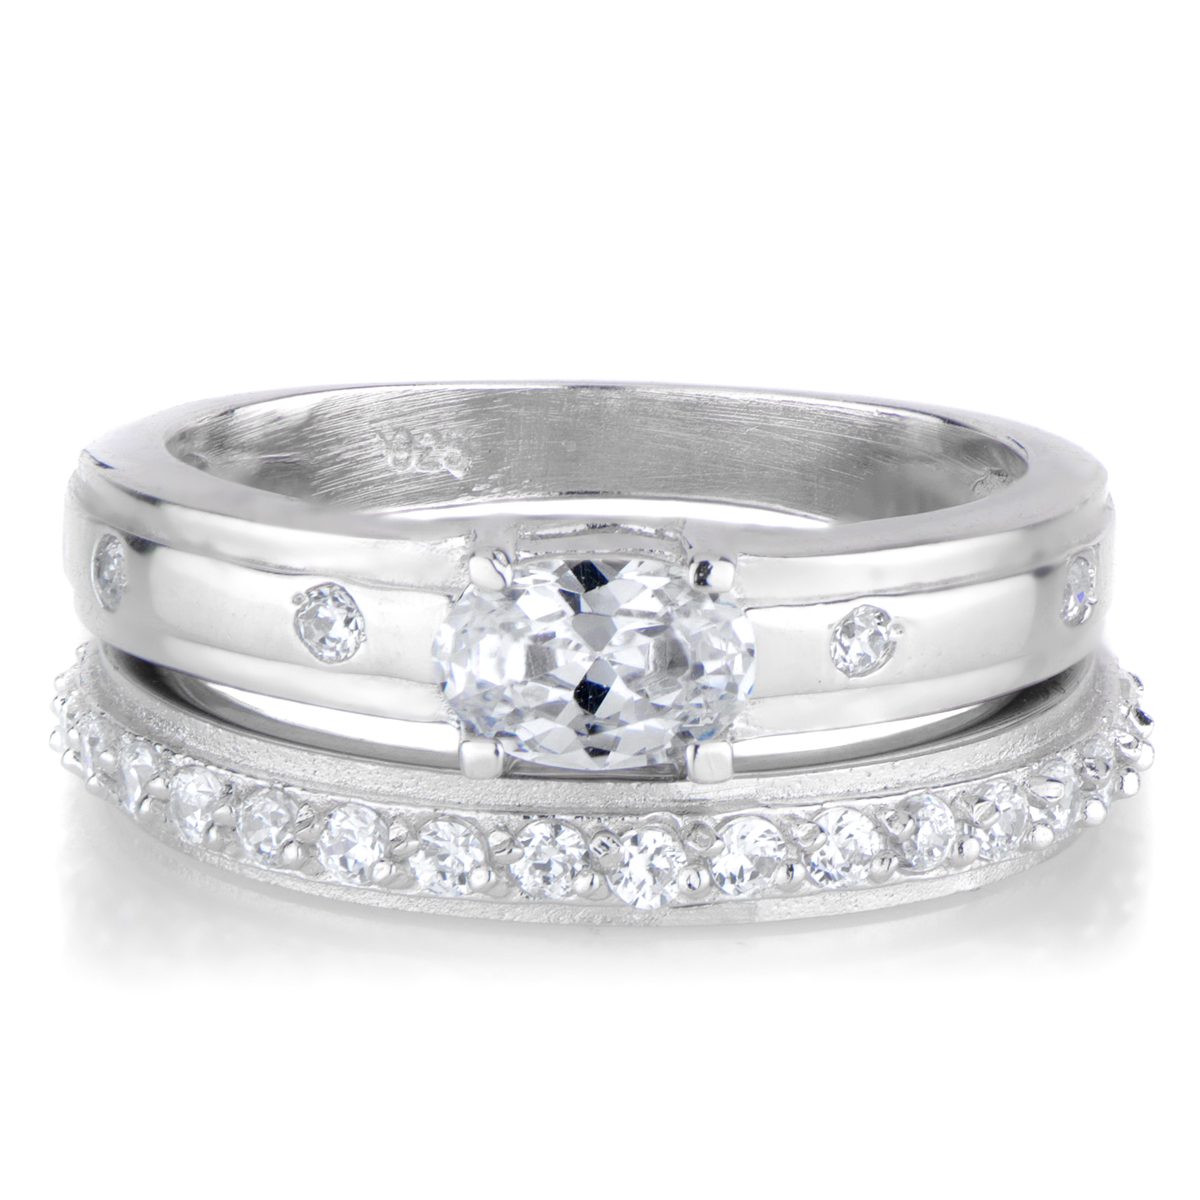 28 excellent unusual wedding ring sets navokalcom for Awesome wedding ring sets